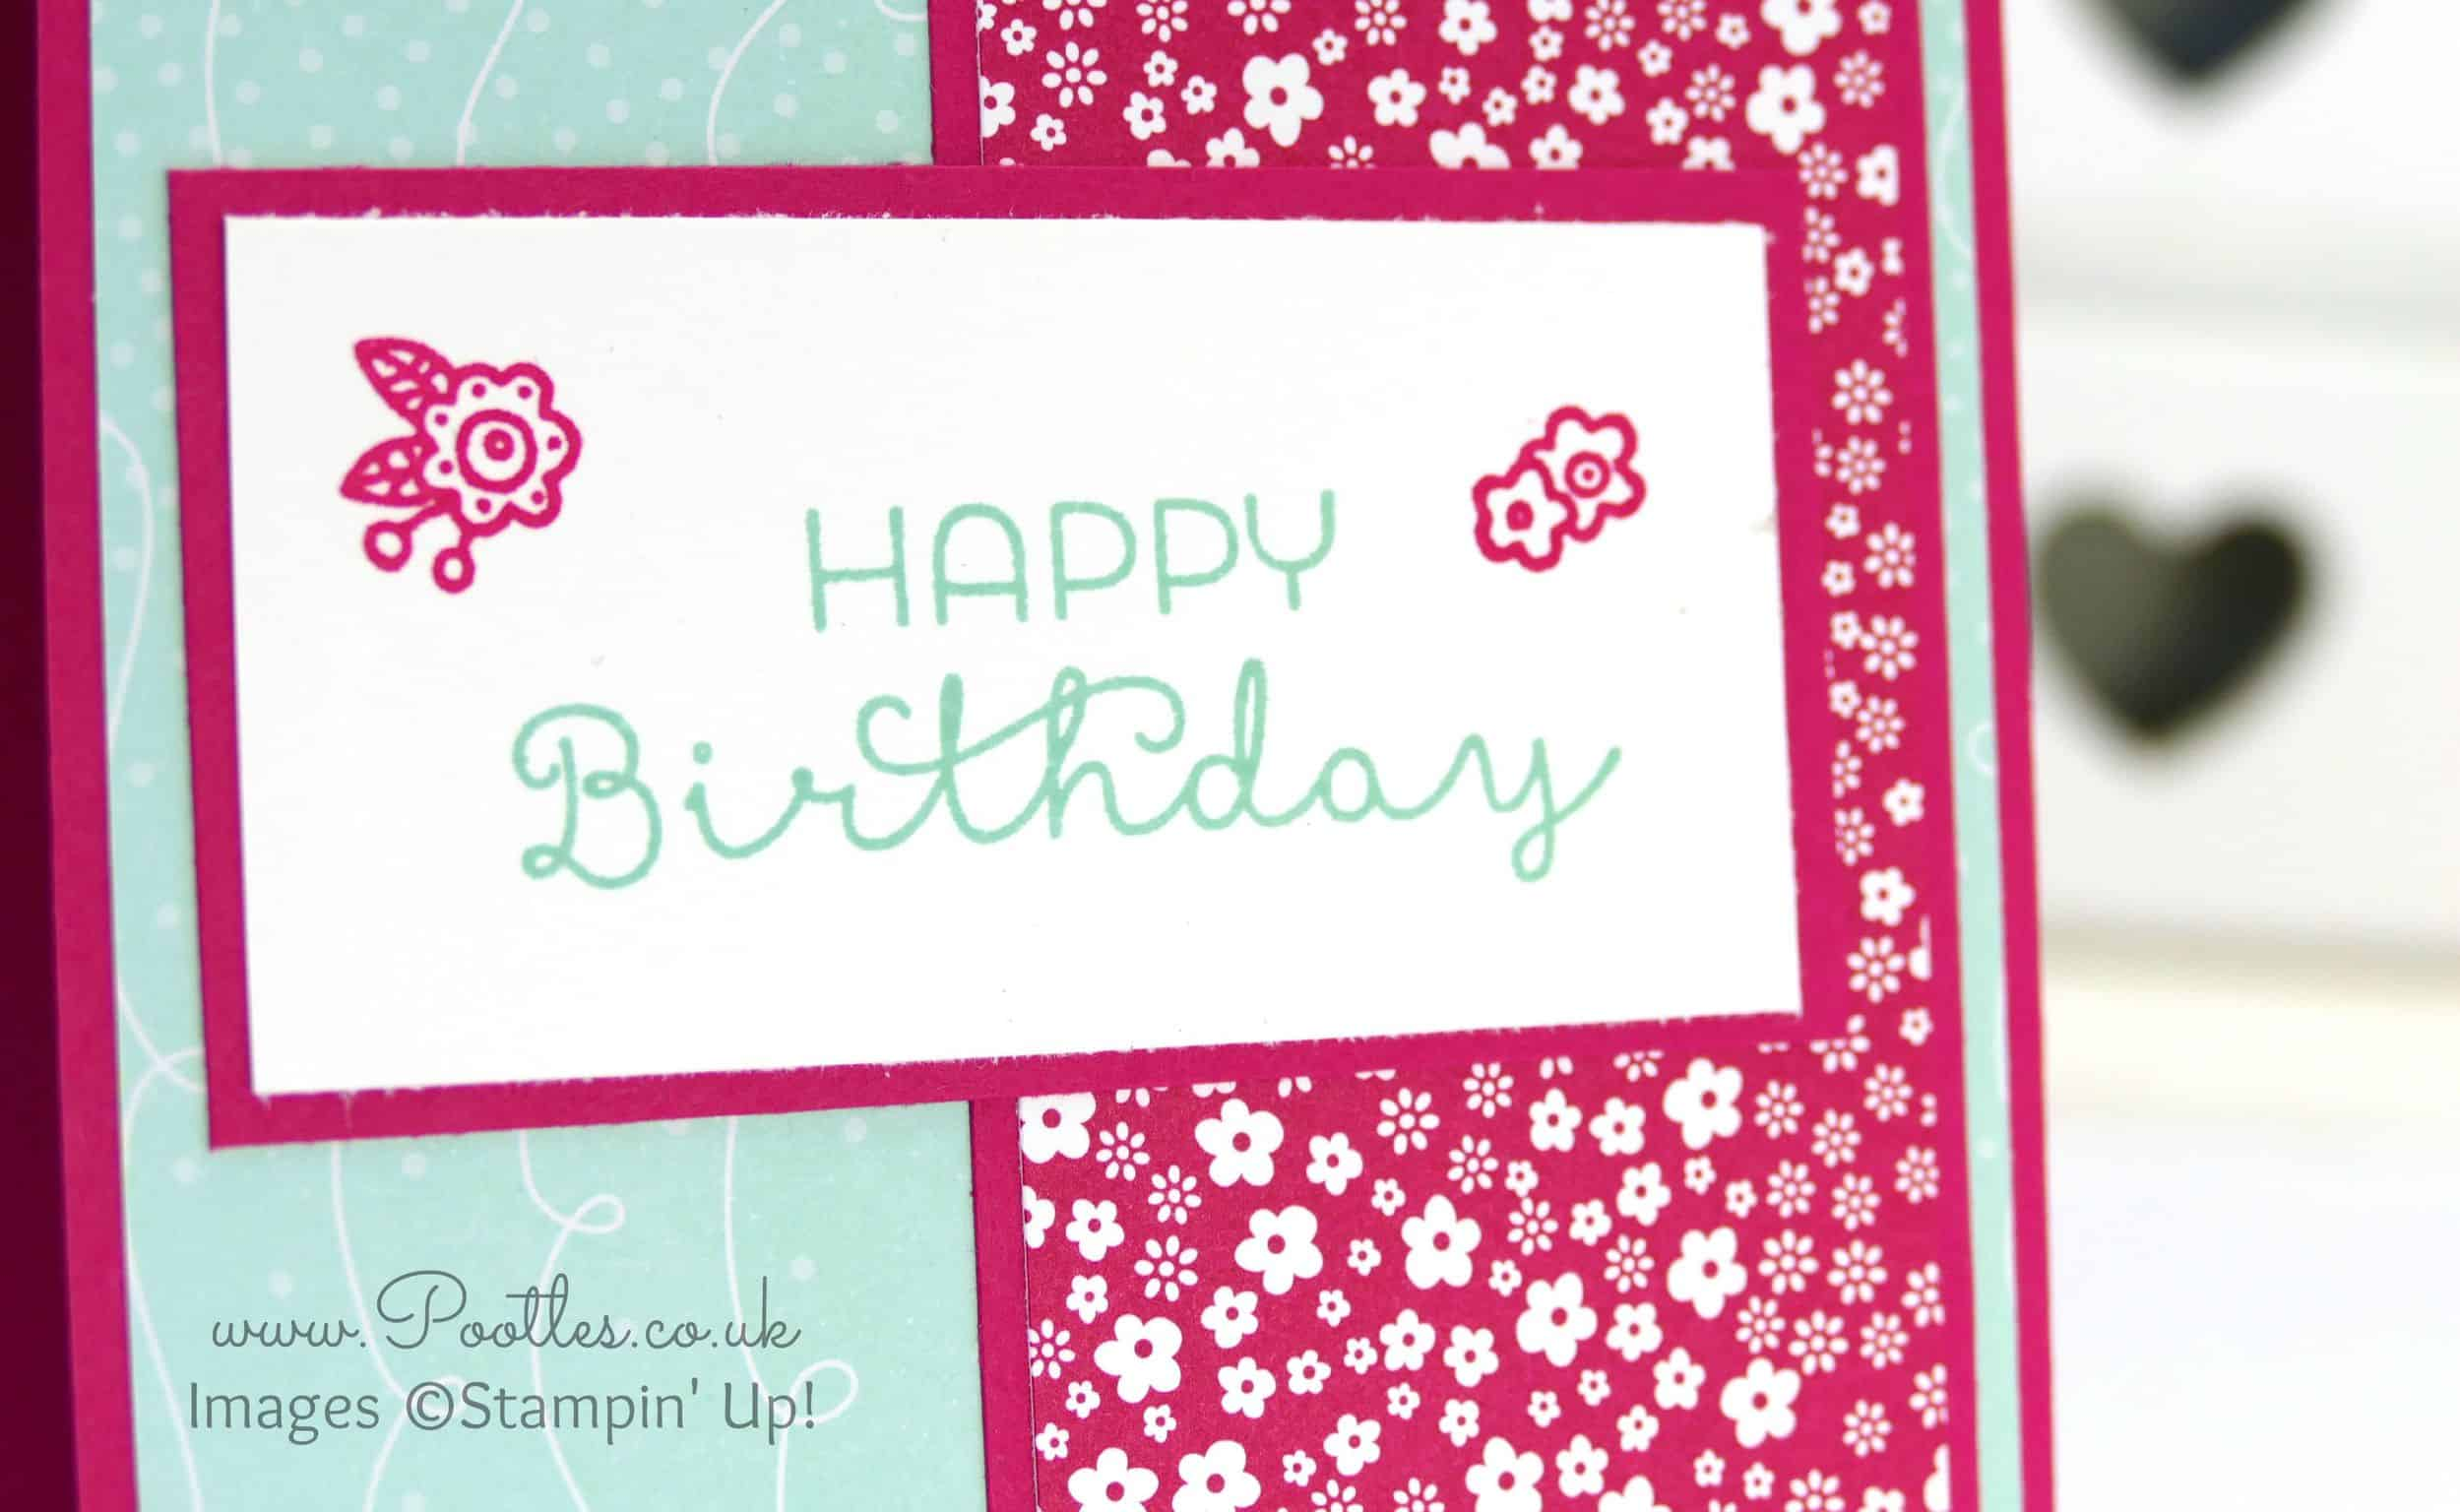 Stampin up demonstrator pootles cottage greetings happy birthday stampin up demonstrator pootles cottage greetings happy birthday with flowers izmirmasajfo